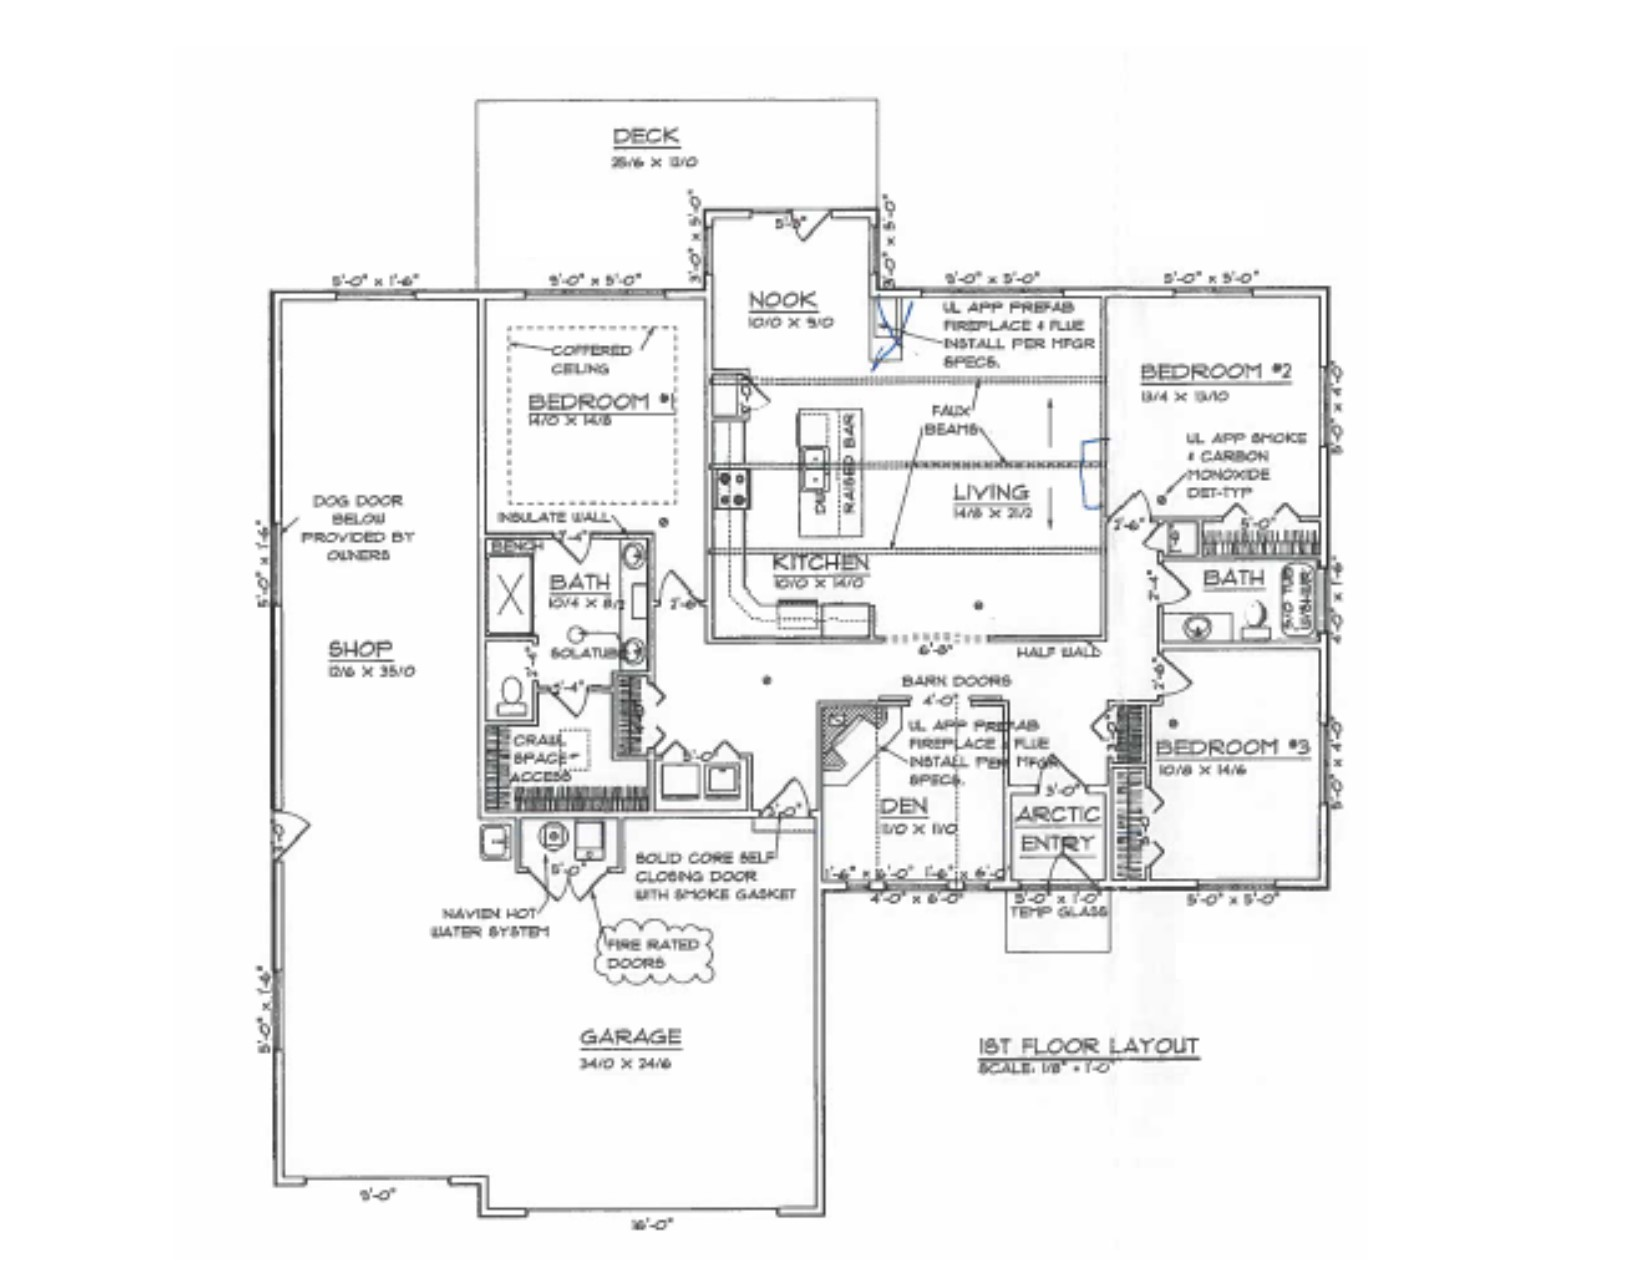 ranch floor plans open concept completely plan skyrim open house pick of the week kailua real estate april 2013